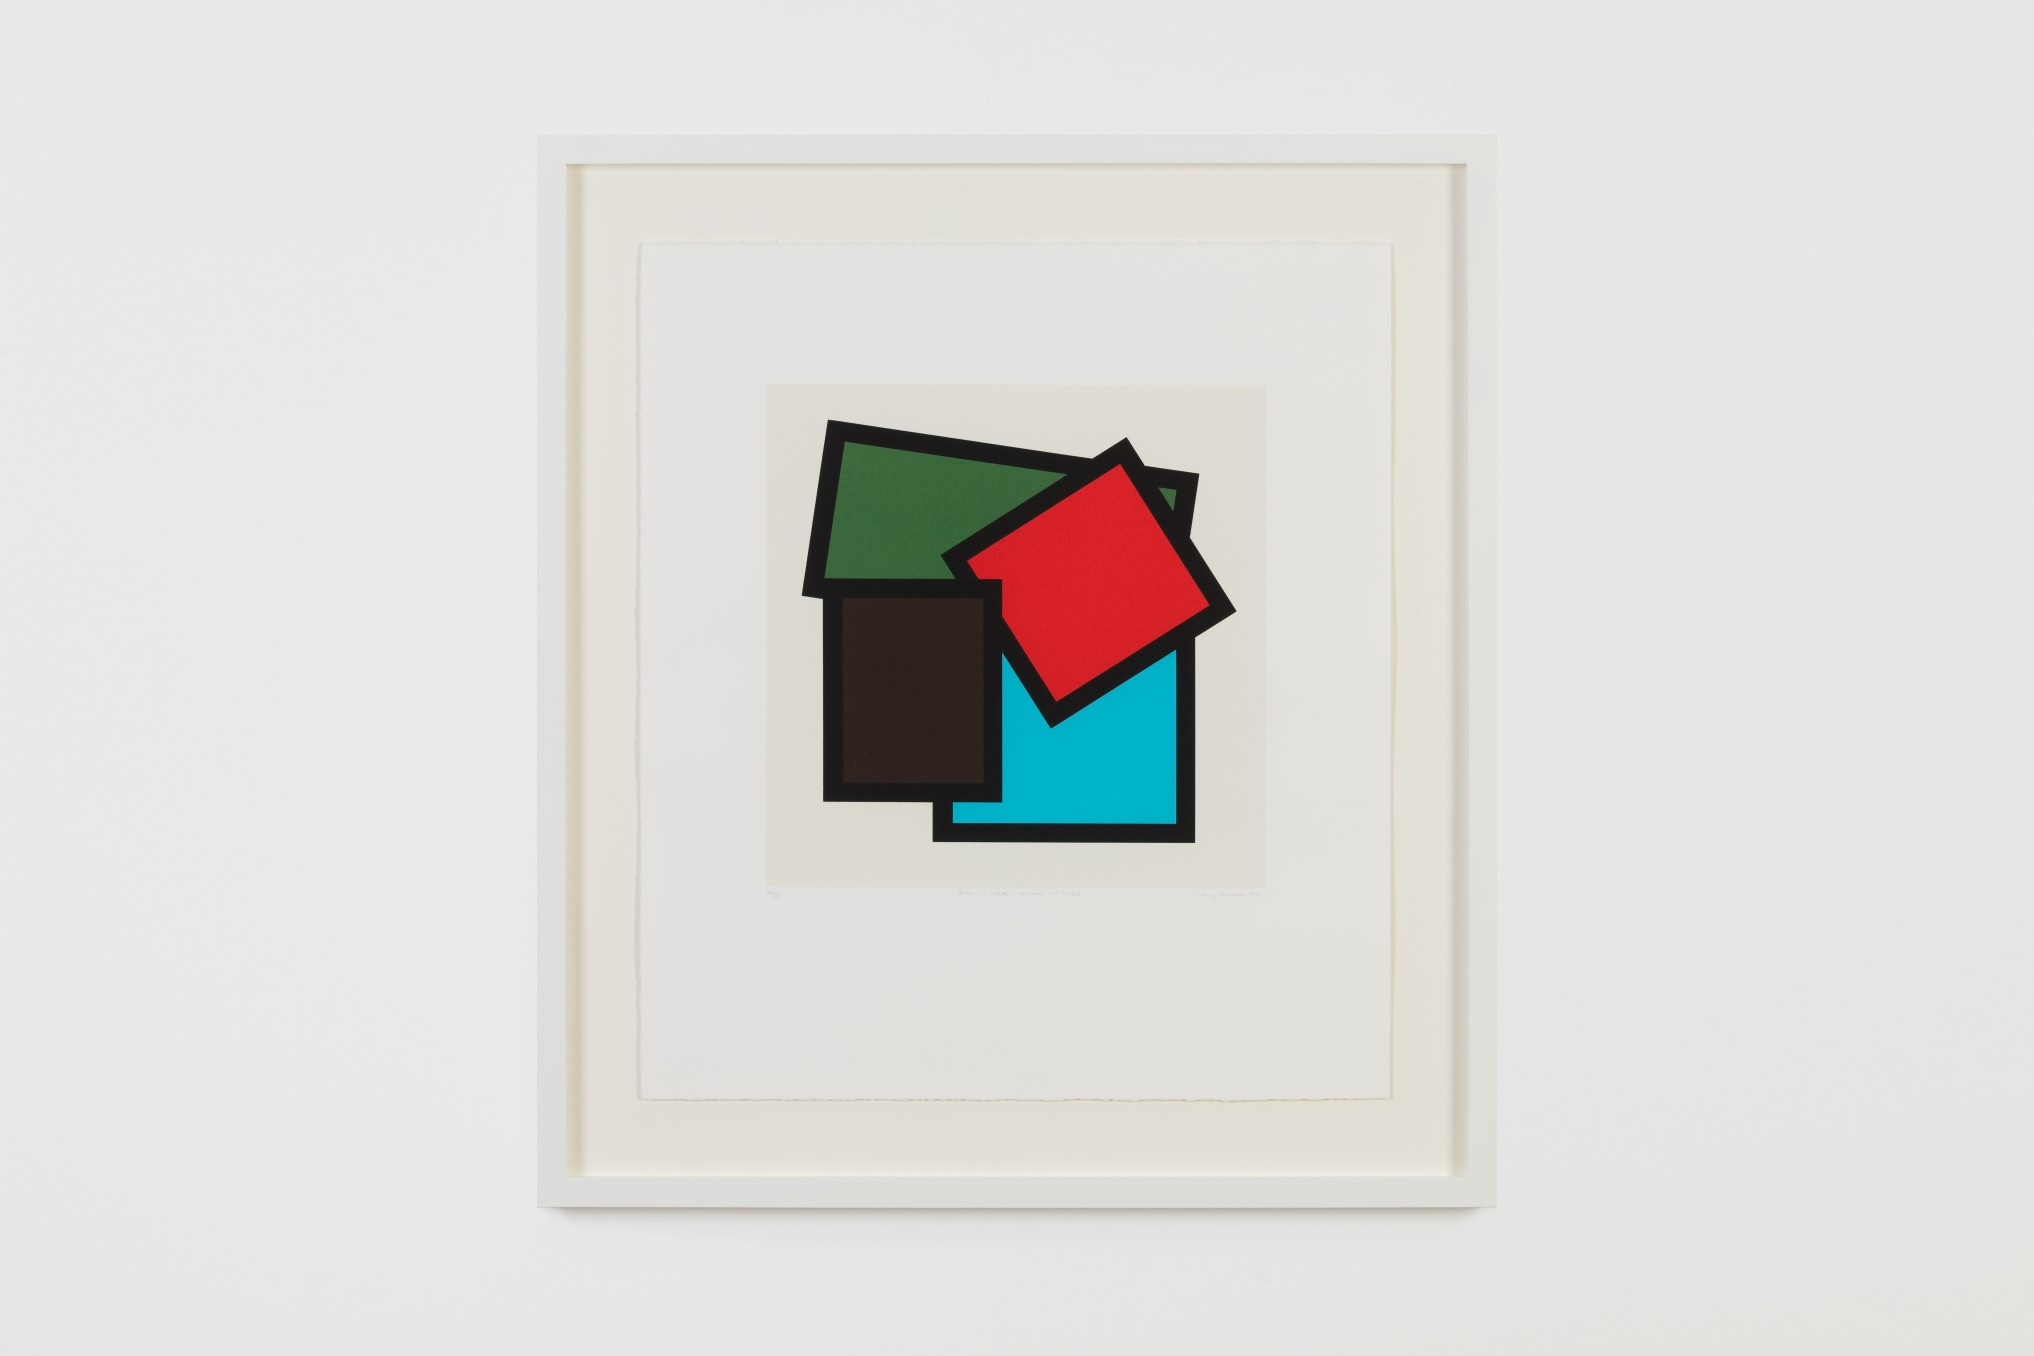 Mary Webb, Brown, red, green & blue, 1996, Screenprint on paper, Print: 33 x 33 cm, 13 x 13 in, Paper: 56.5 x 49 cm, 22 1/4 x 19 1/4 in, Edition of 32